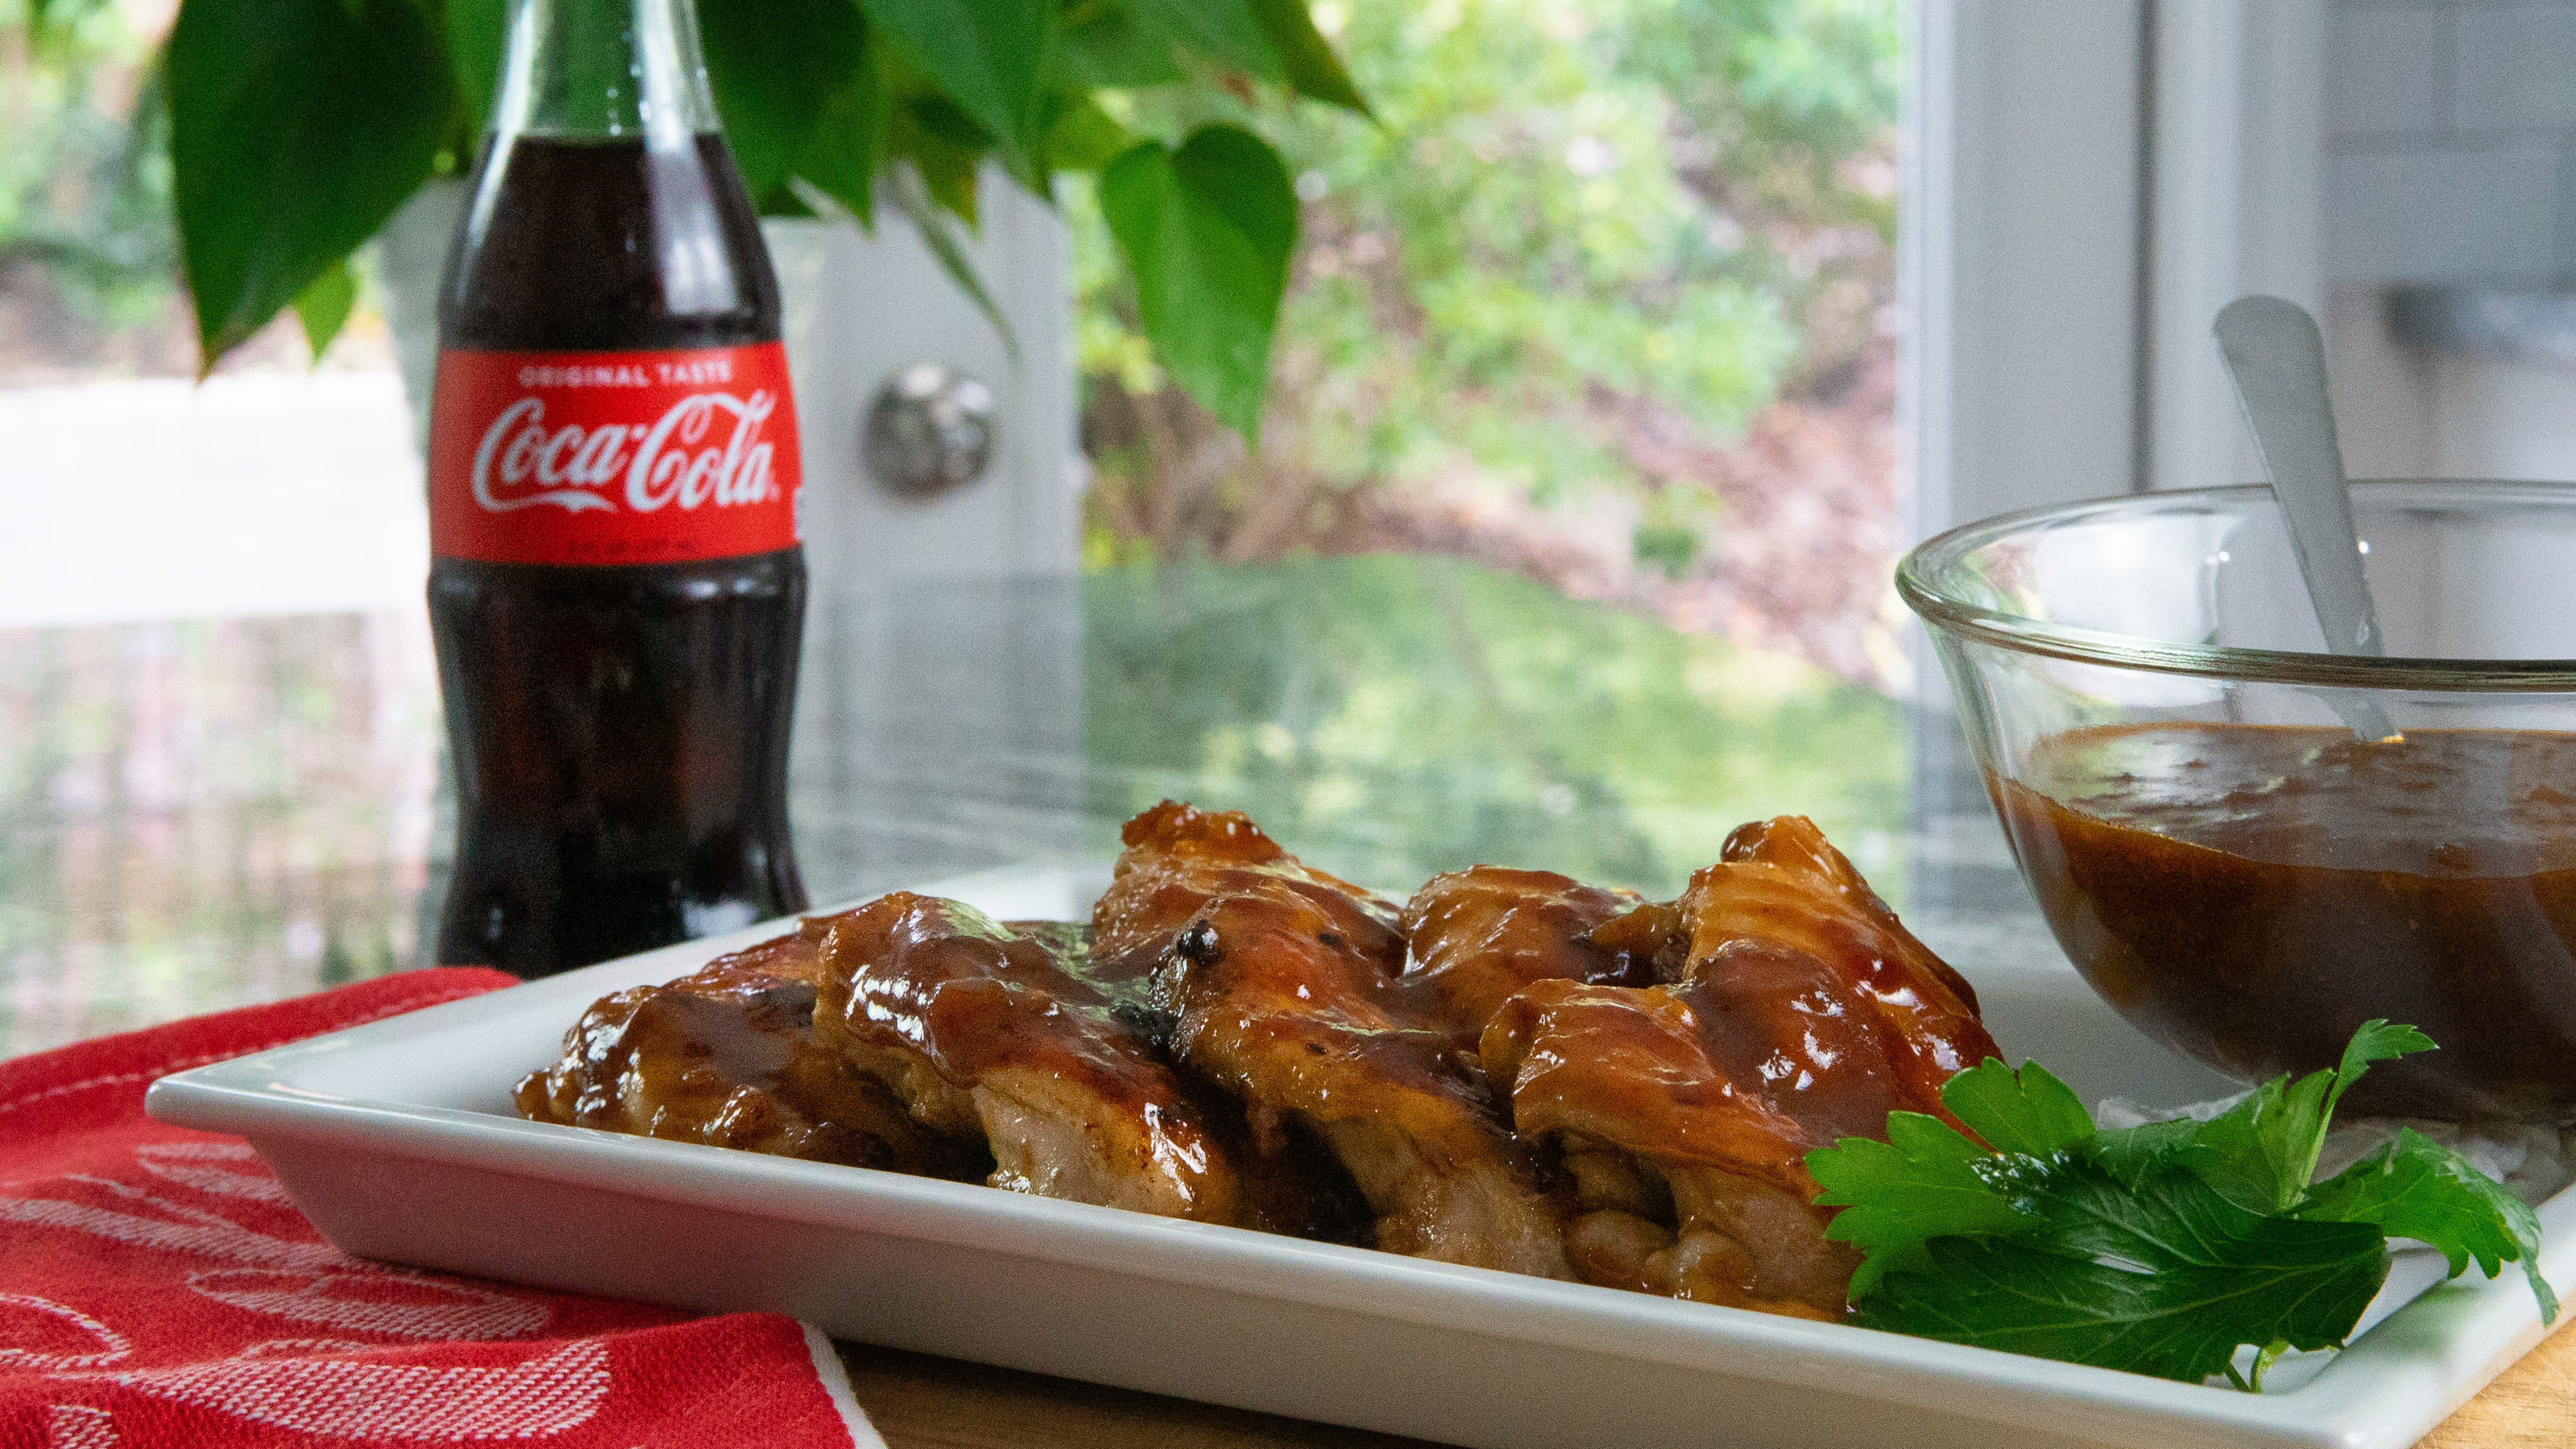 Sweet Southern BBQ Chicken Infused with Coca-Cola